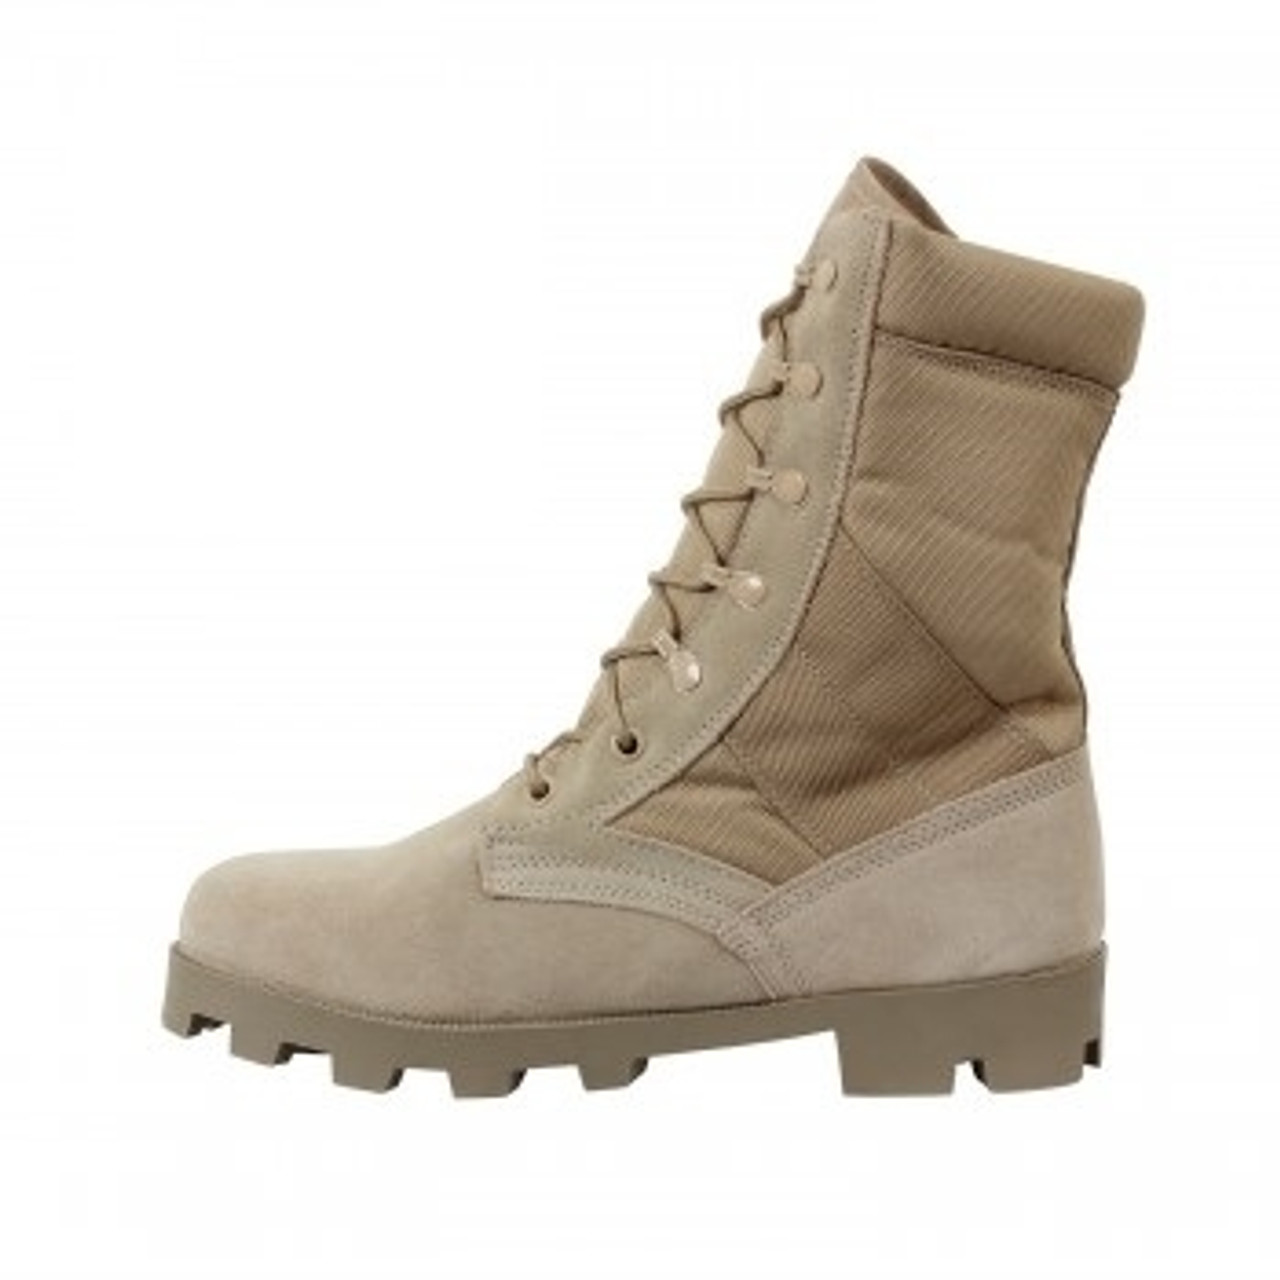 Tan Jungle Boot from Hessen Tactical